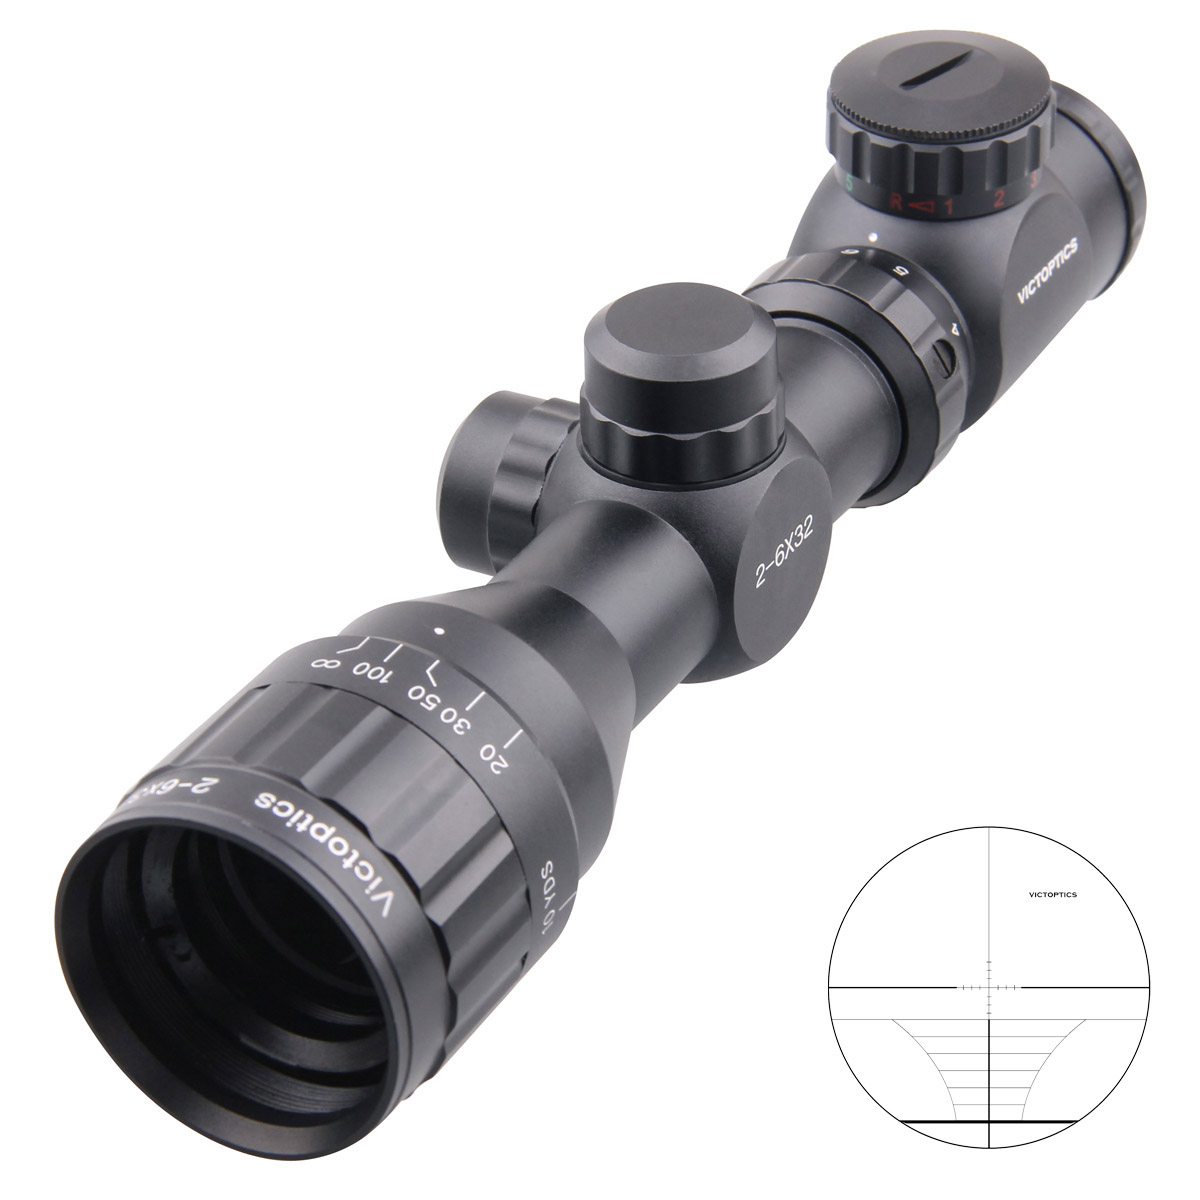 Victoptics 2-6x32 AOE Tactical Scope 25.4mm Monotube Range Finder Reticle 1/4